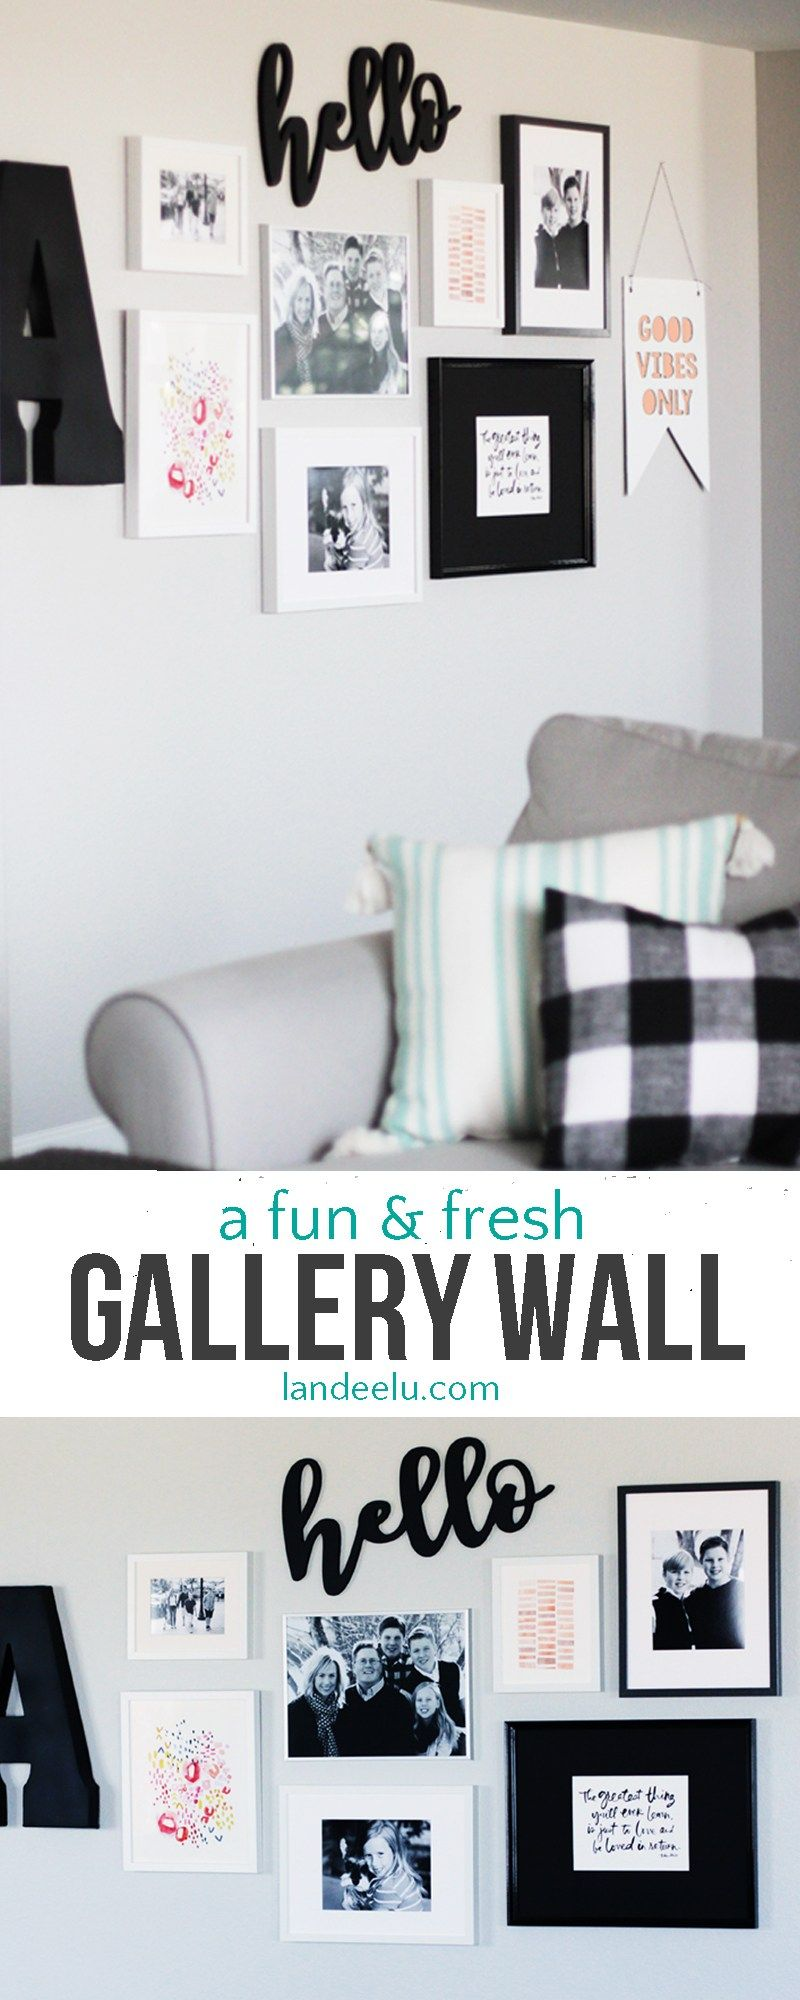 Create an eye catching gallery wall with interesting